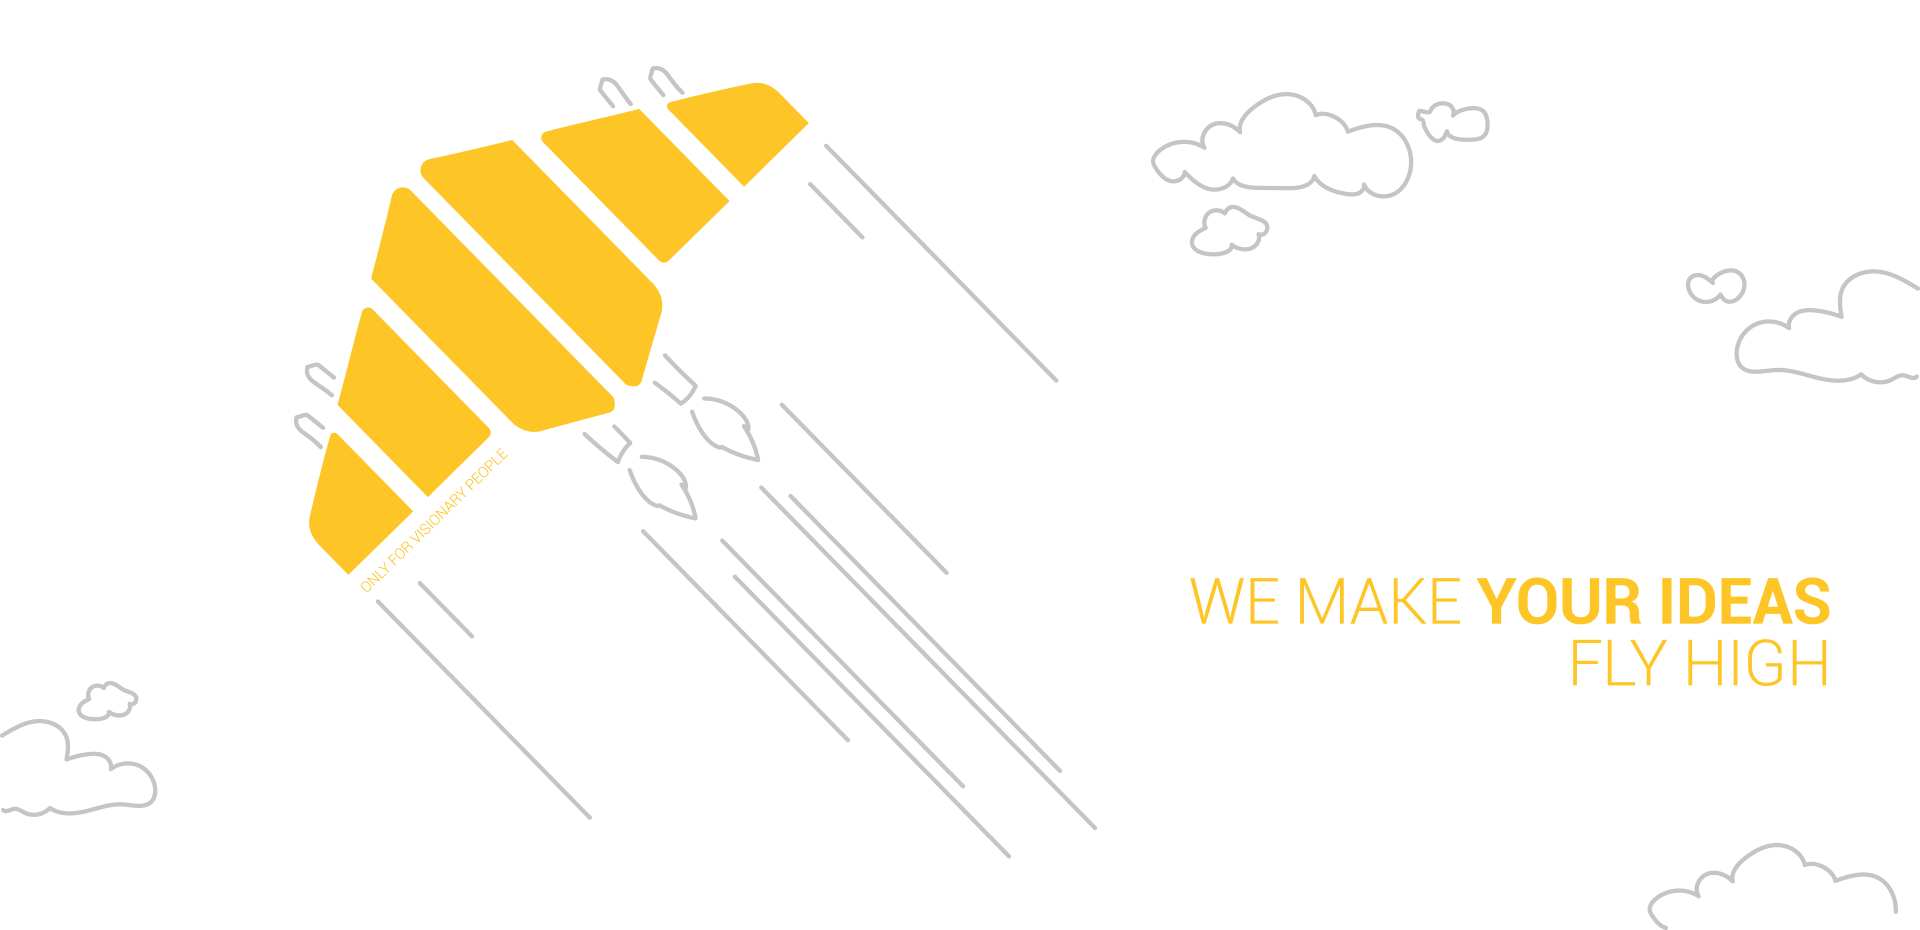 We make your ideas fly high